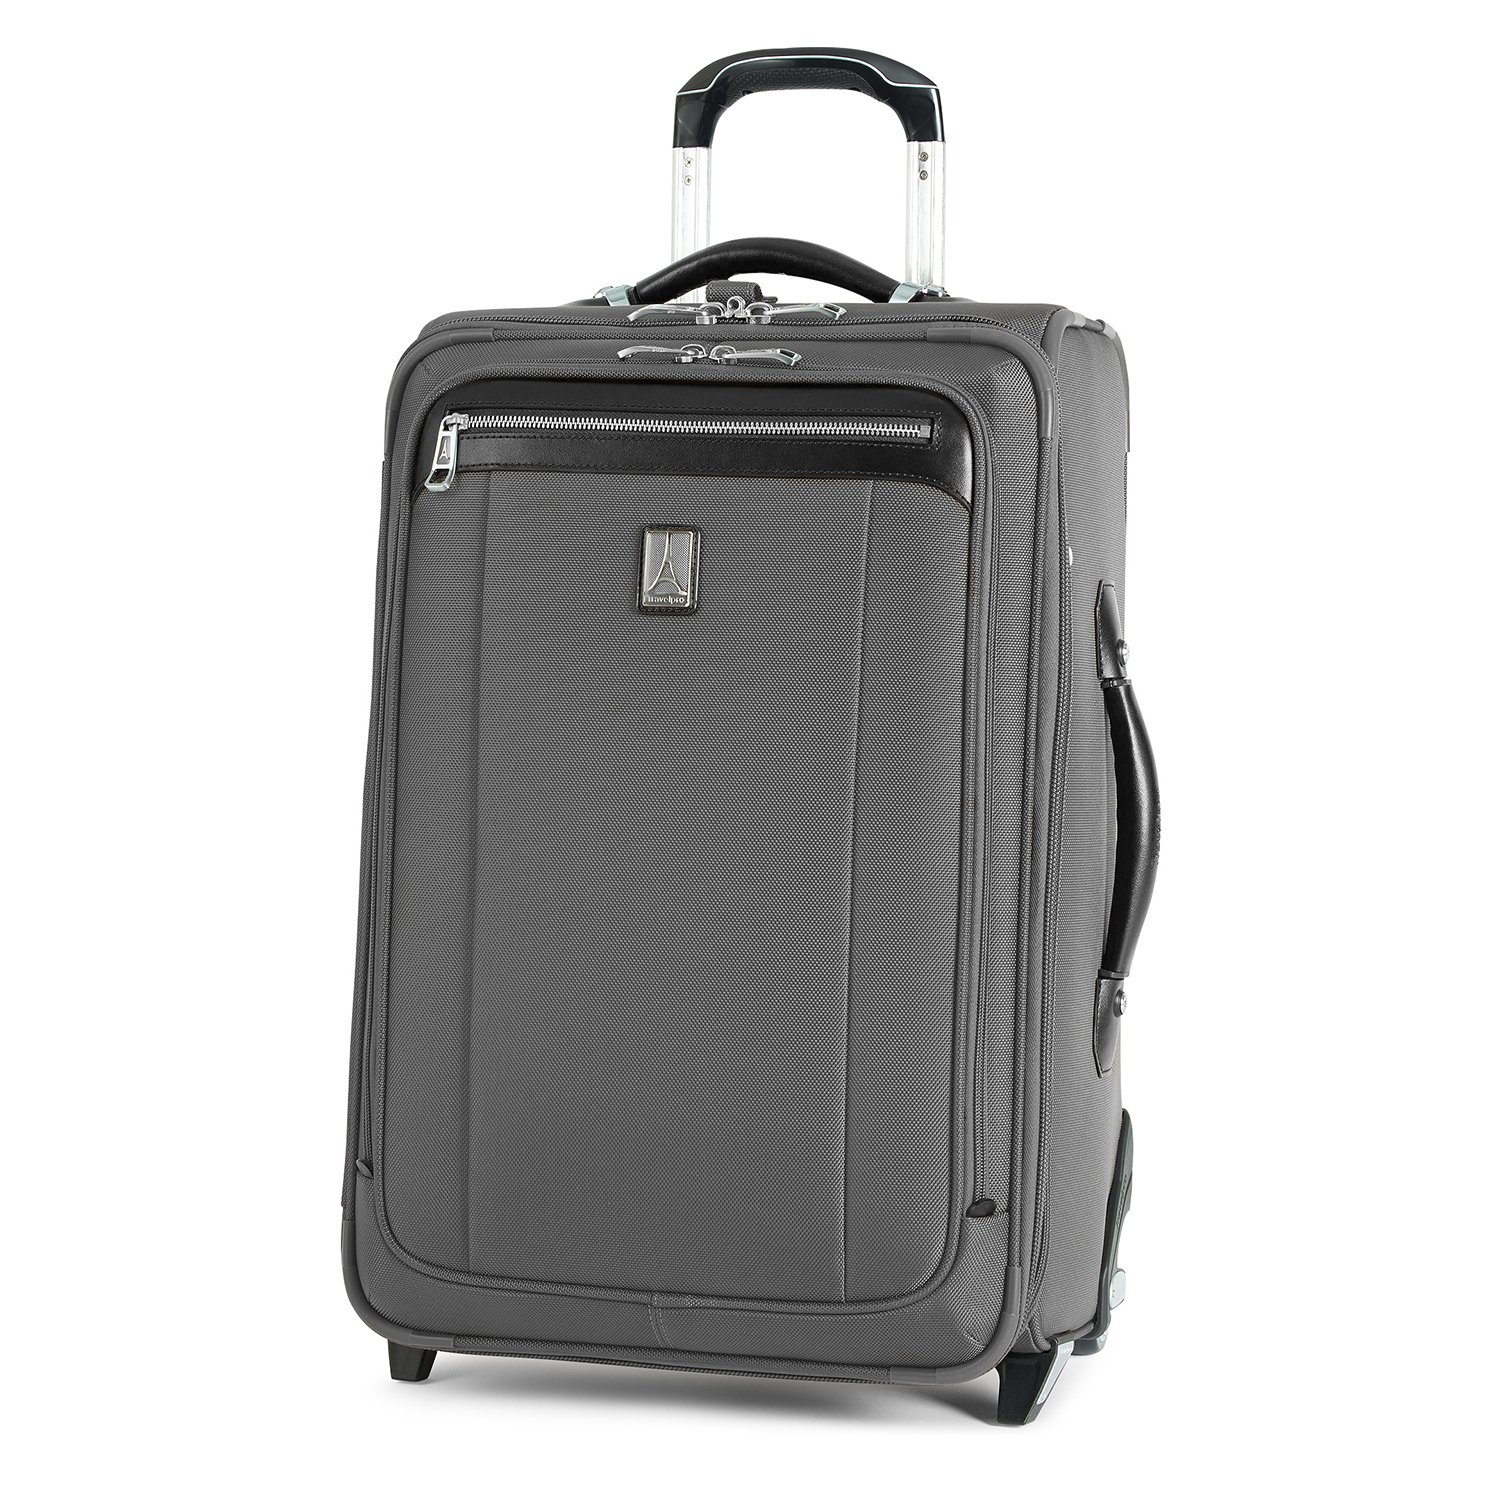 Travelpro Platinum Magna 2 Carry-On Expandable Rollaboard Suiter Suitcase, 22-in., Charcoal Grey